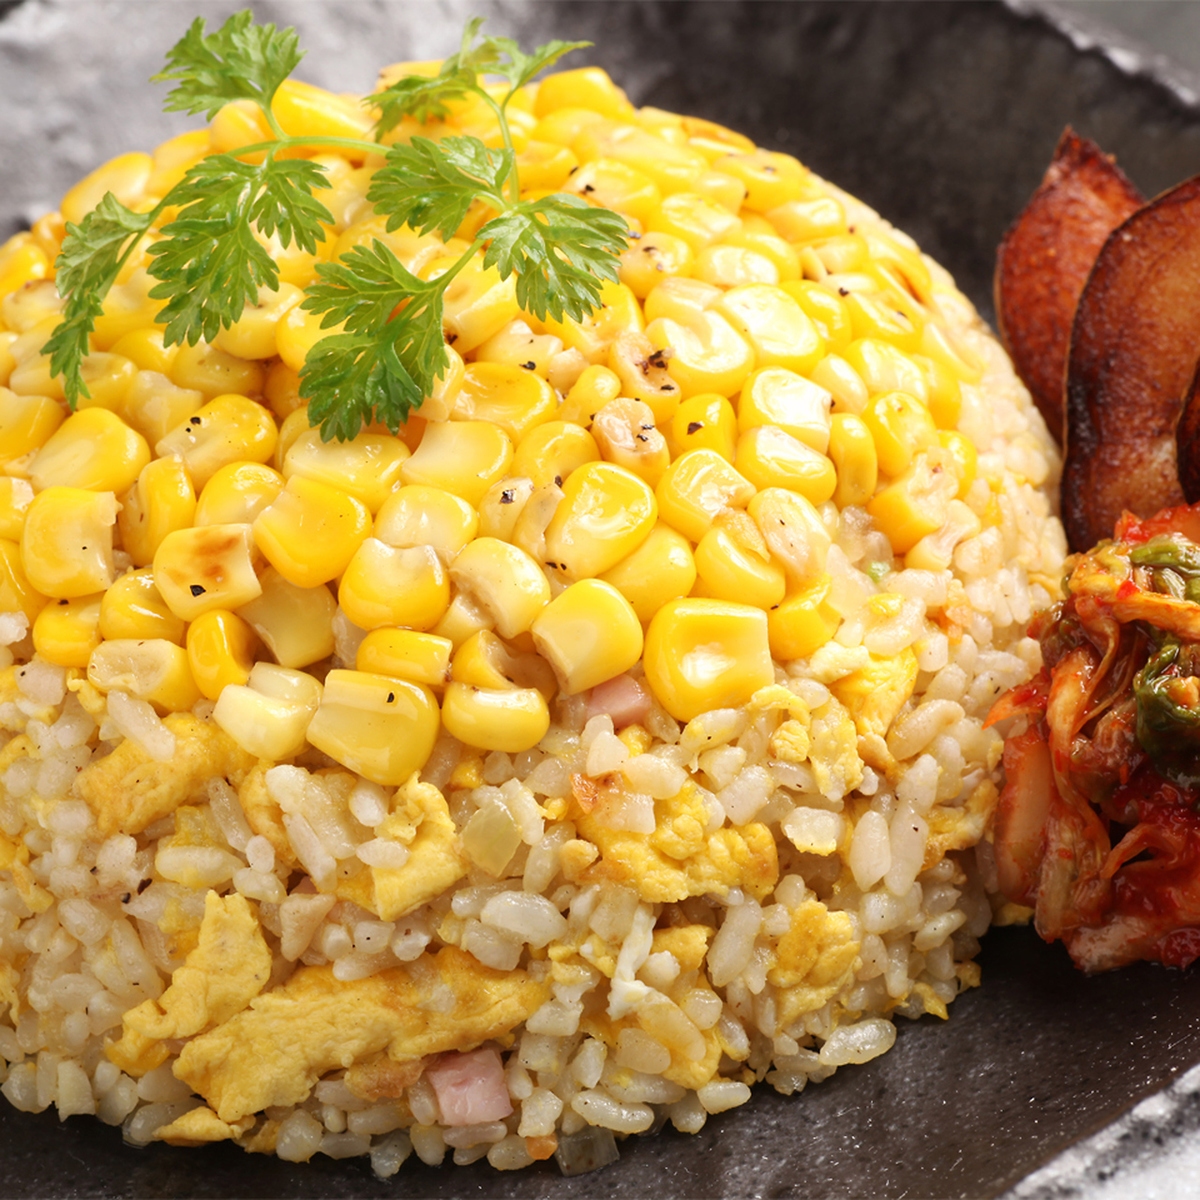 【Shogun's specialty】 Corn fried rice